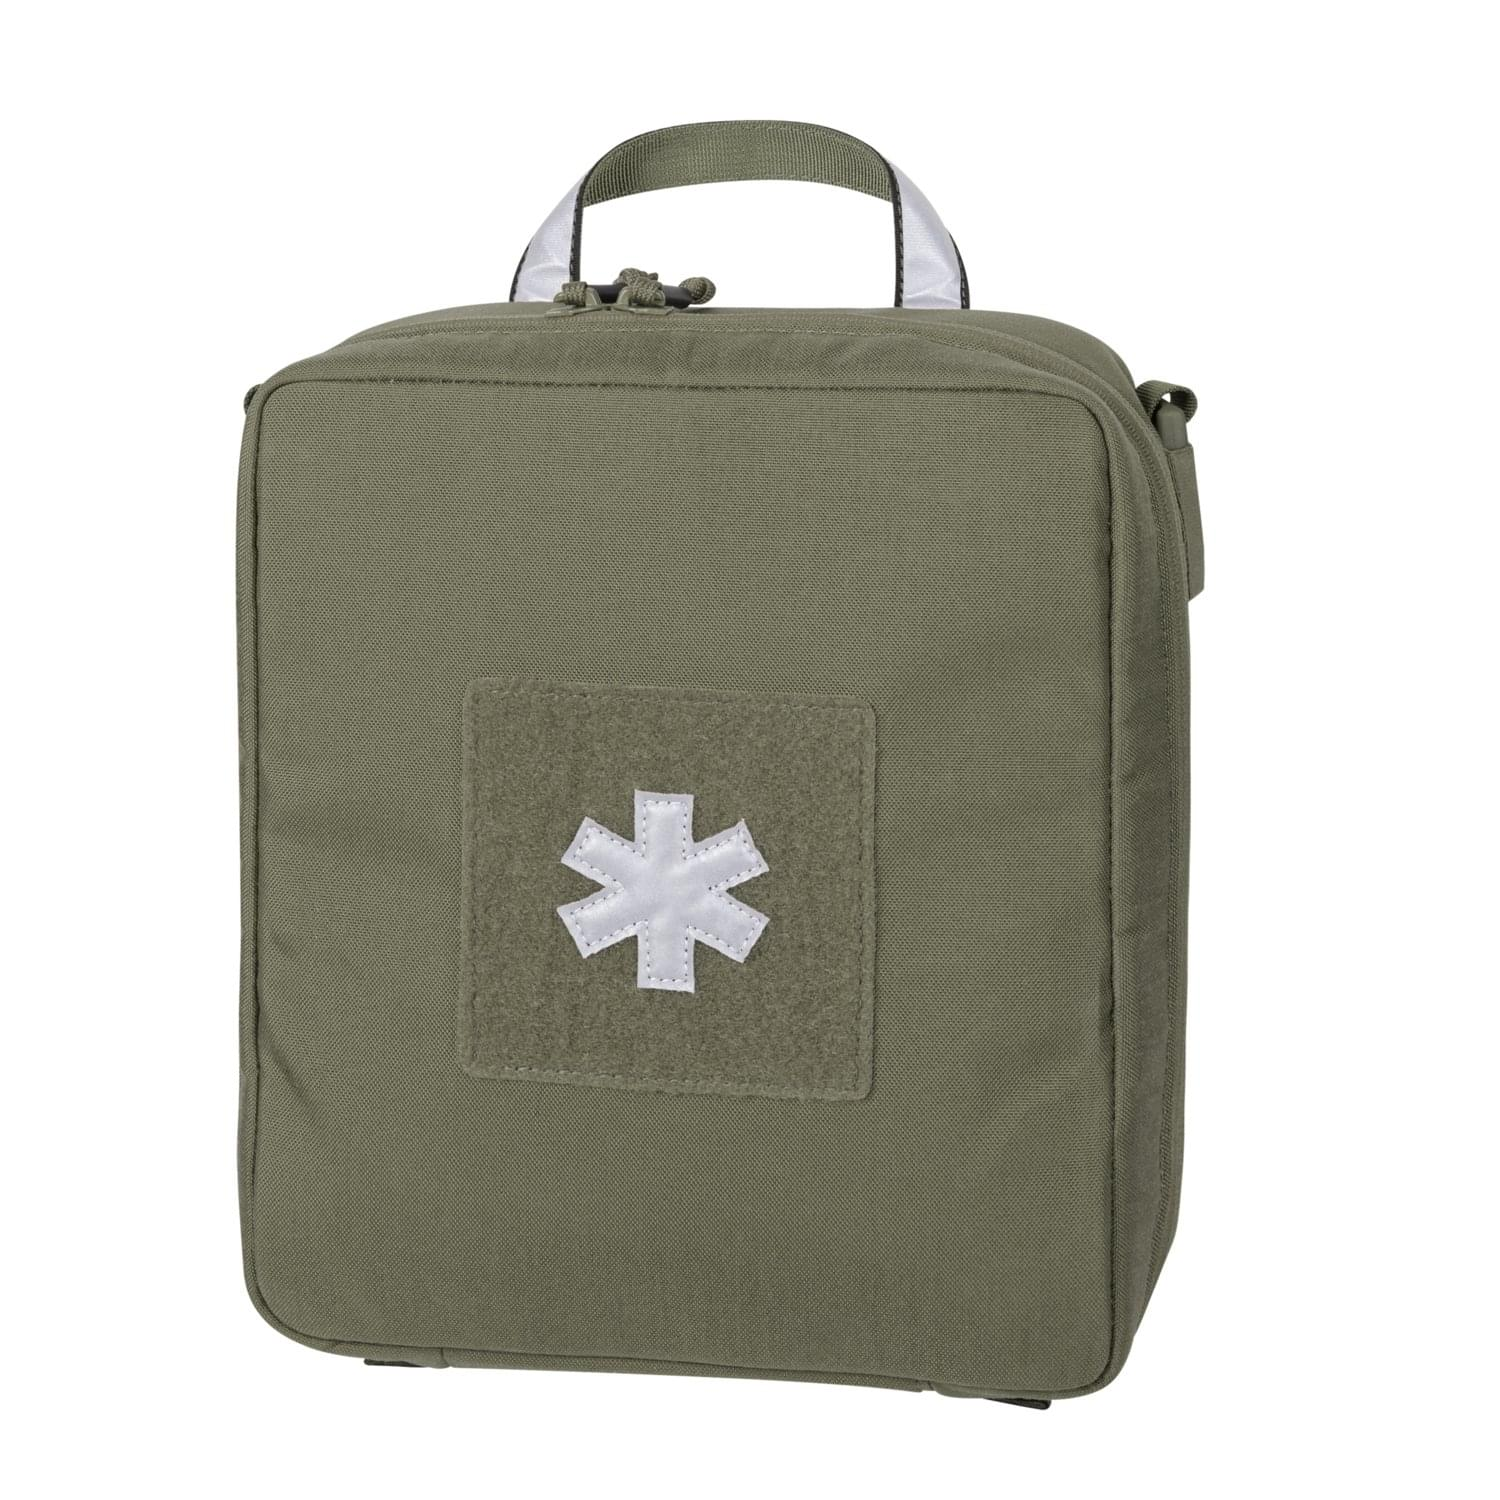 AUTOMOTIVE MED KIT® POUCH – CORDURA® – Adaptive Green